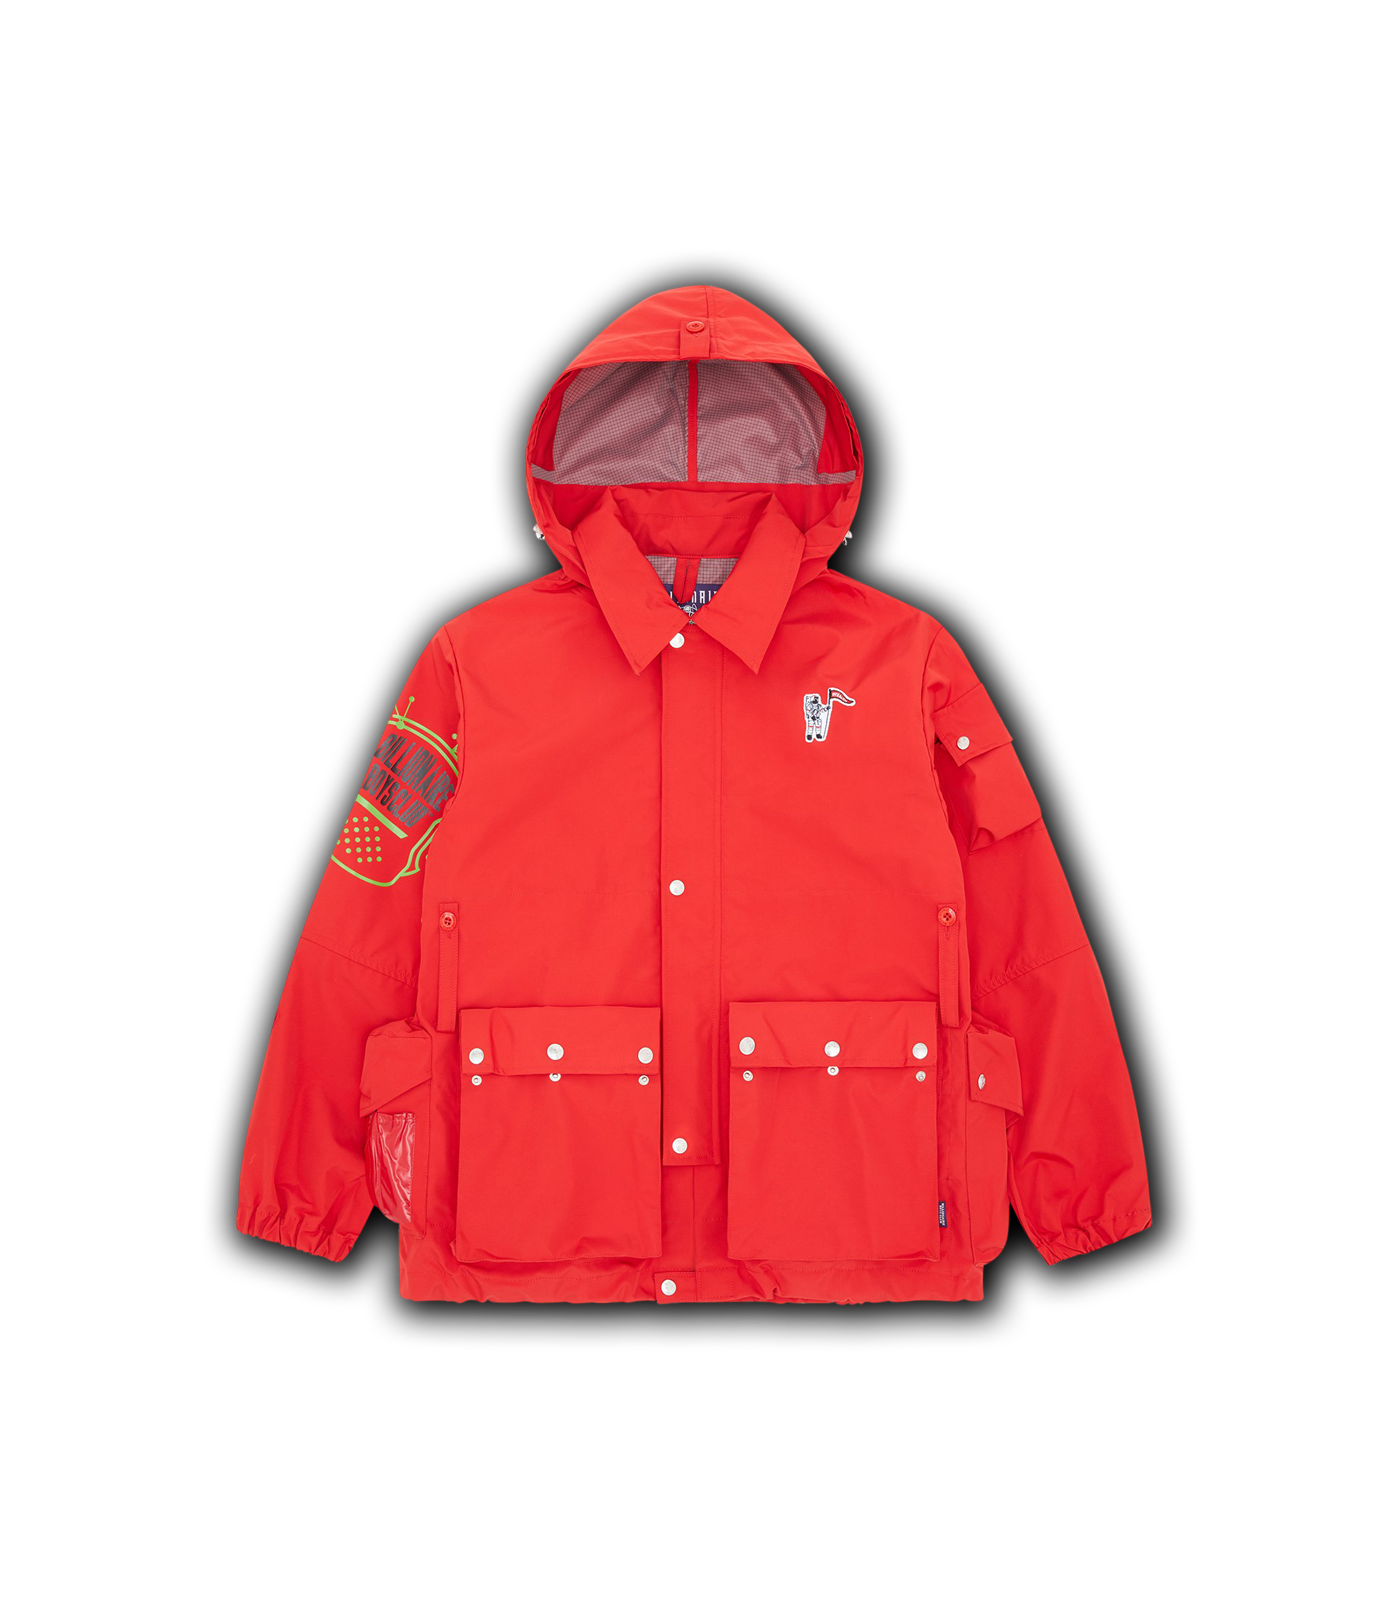 M70 FIELD JACKET - RED